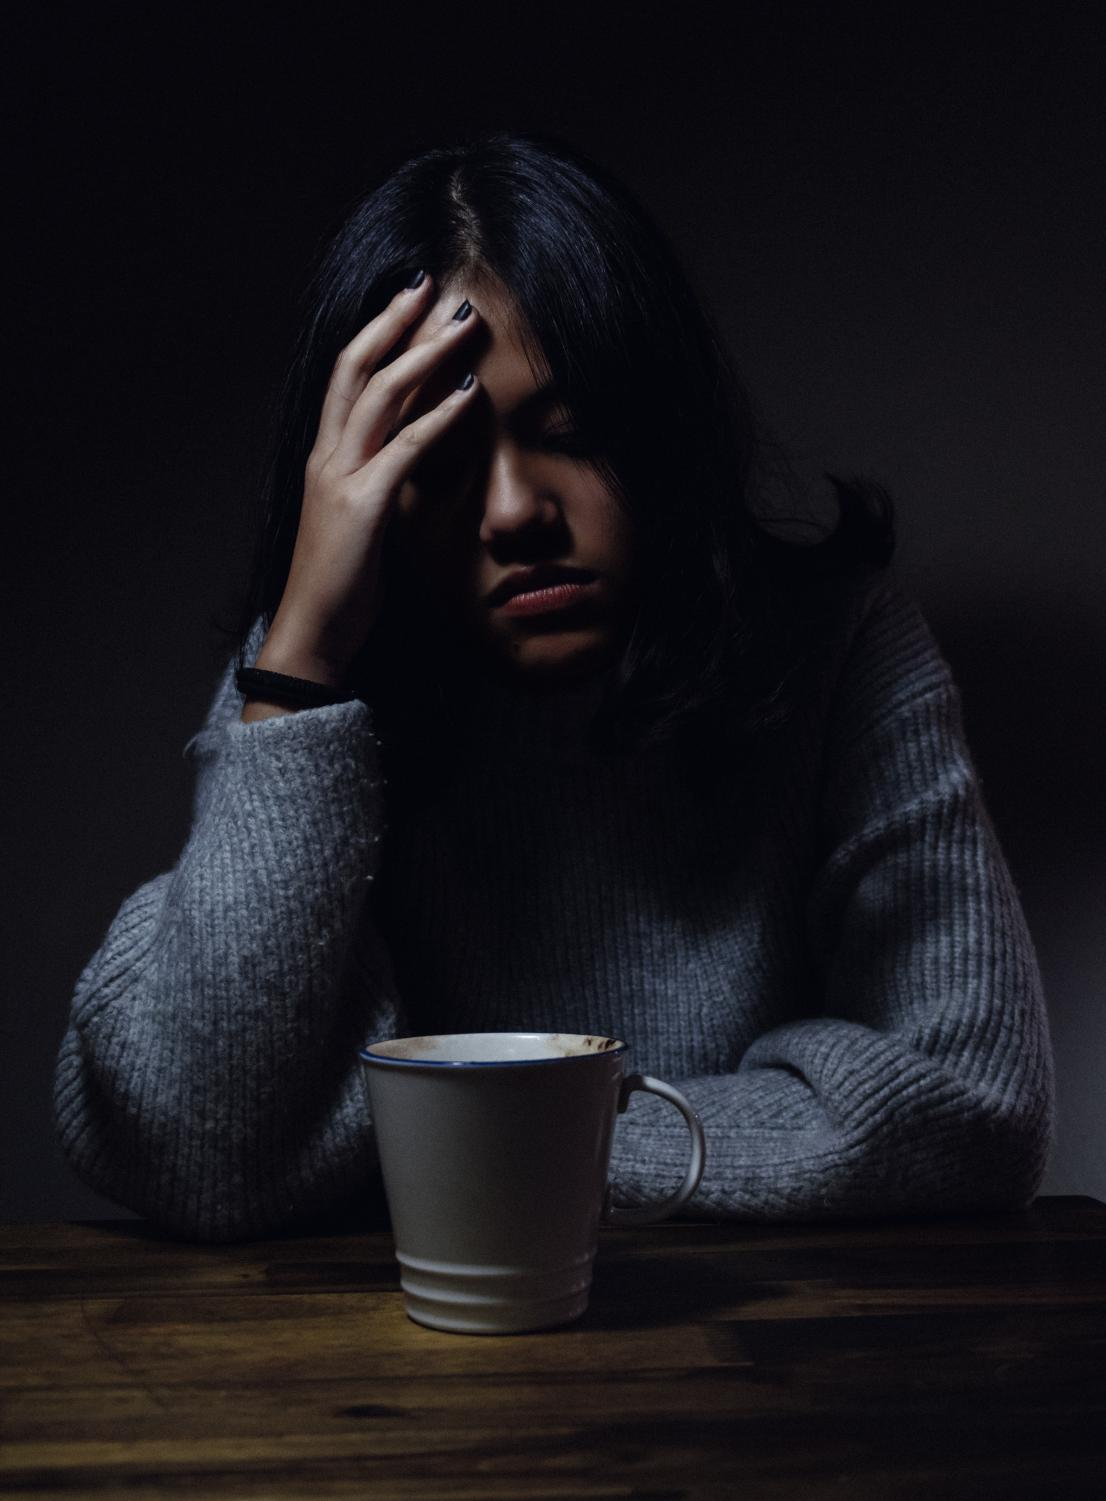 Mental health issues plague a majority of the student body.